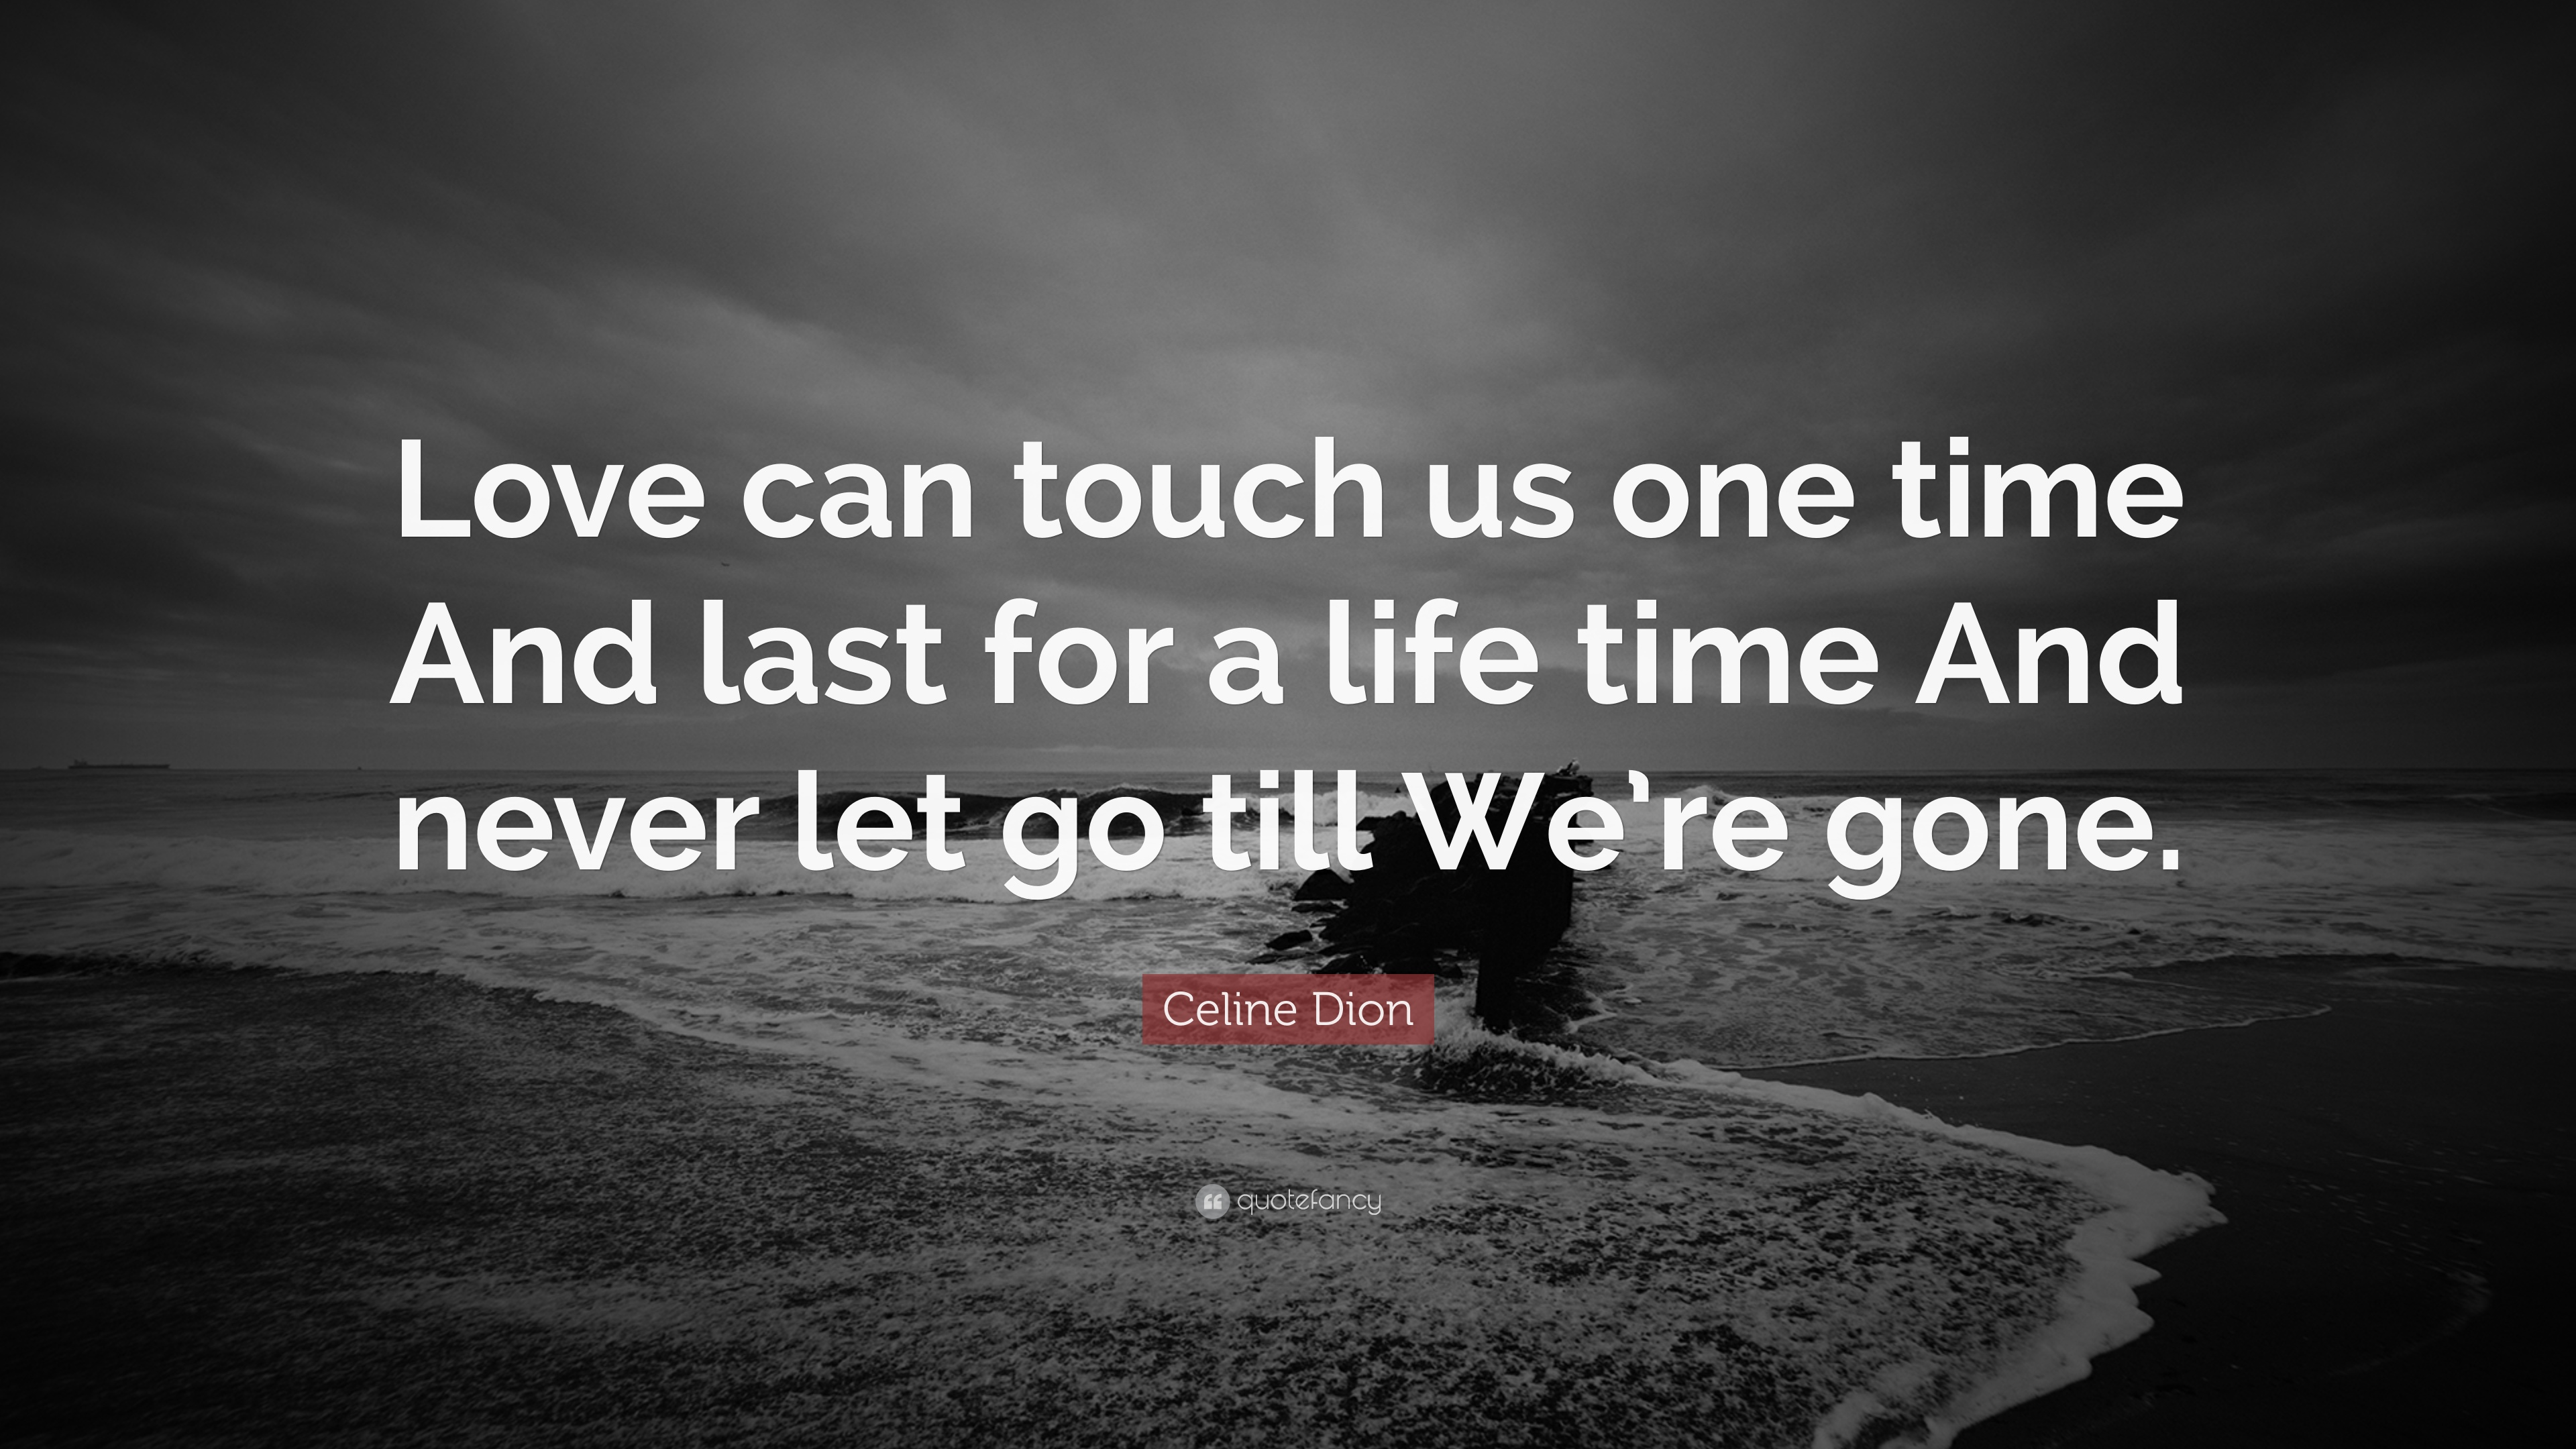 Celine Dion Quote: U201cLove Can Touch Us One Time And Last For A Life